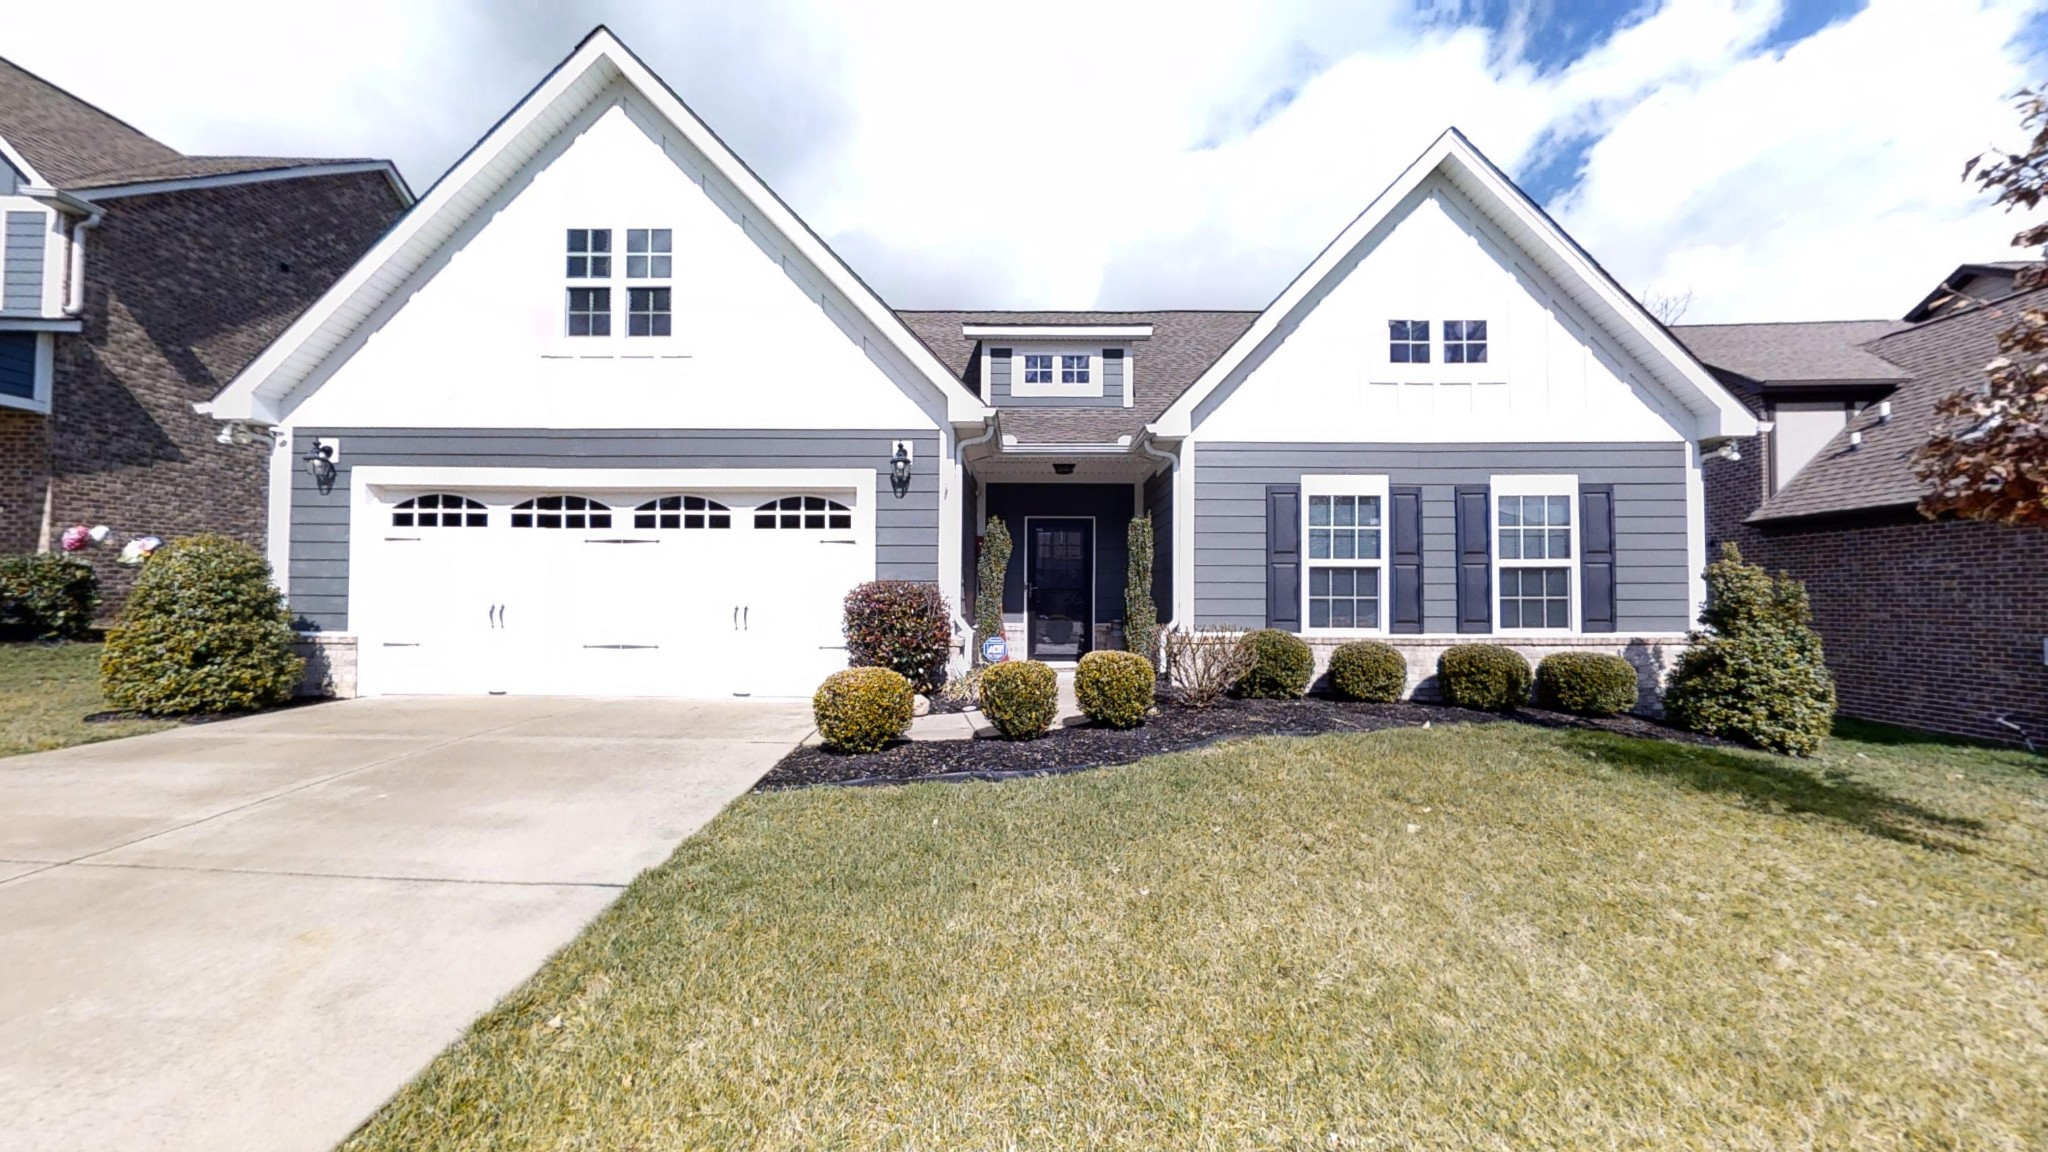 2188 Chaucer Park Ln, Thompsons Station, TN 37179 - Thompsons Station, TN real estate listing